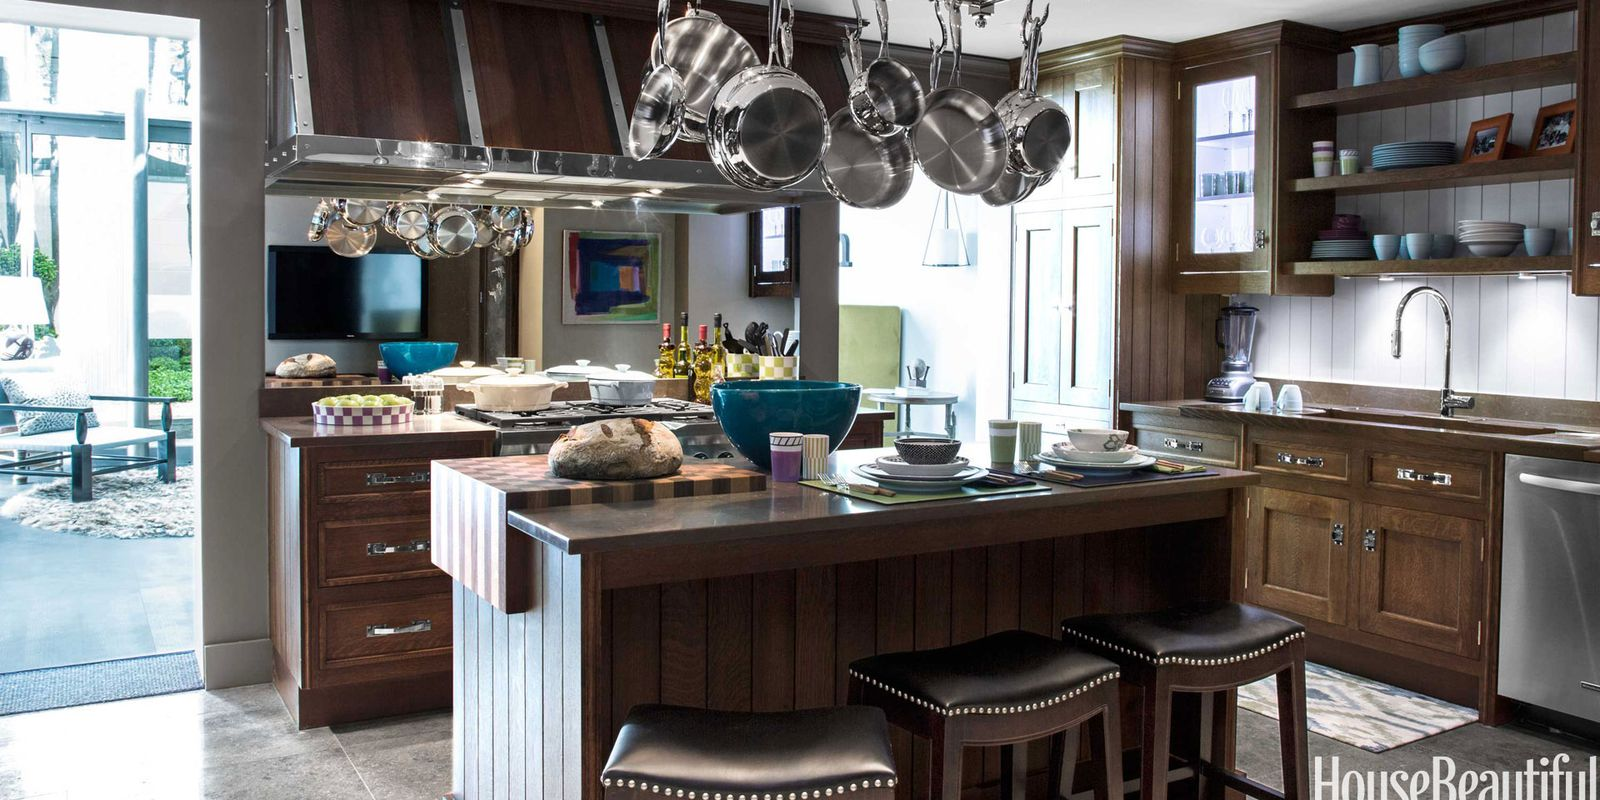 Peacock Kitchen Endearing With Christopher Peacock Kitchen Design Picture